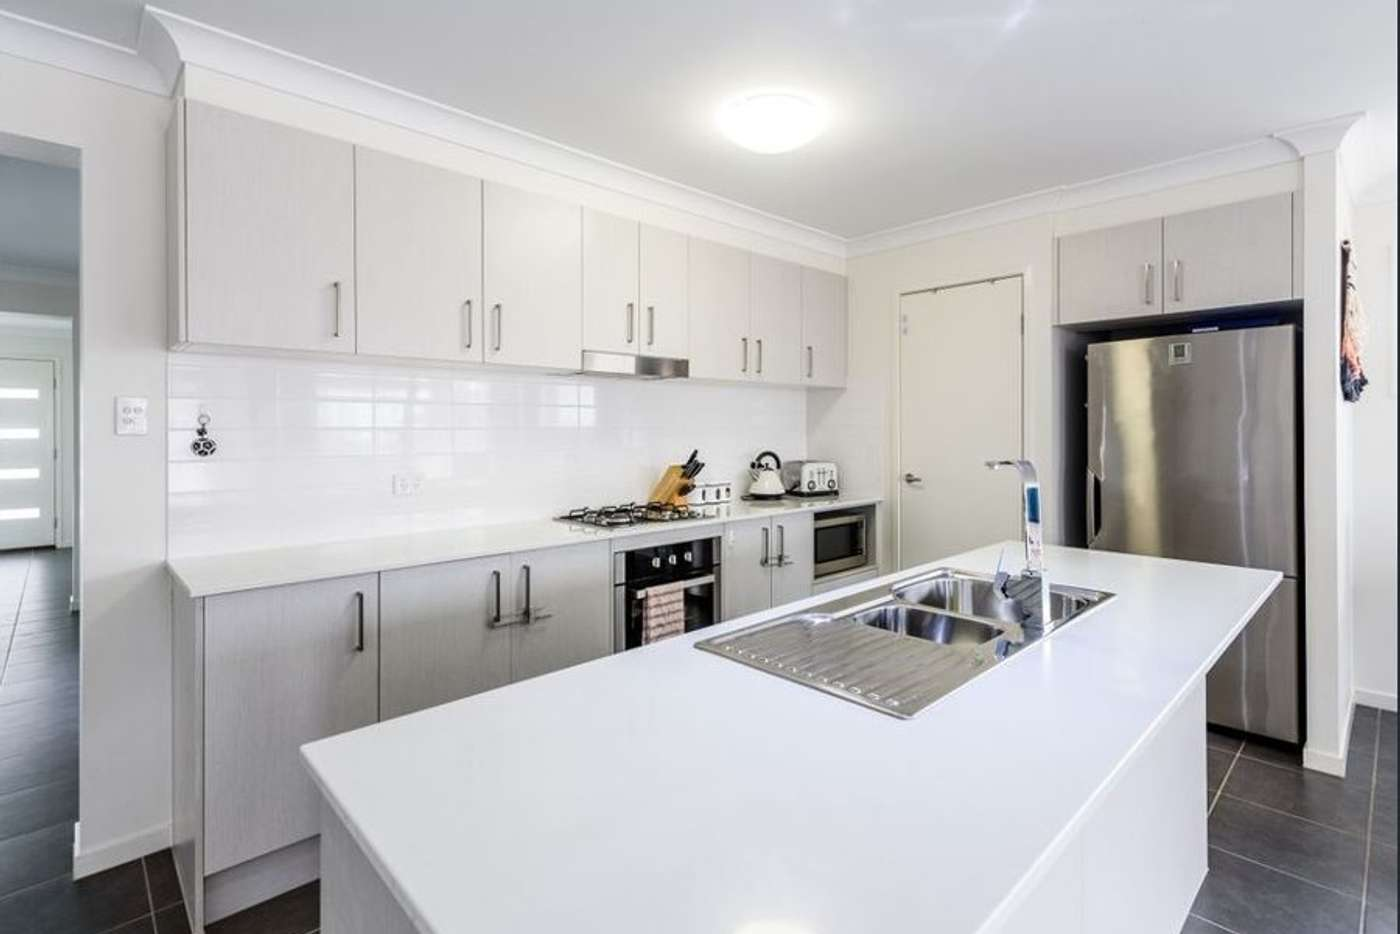 Main view of Homely house listing, 20 Azure Way, Coomera QLD 4209